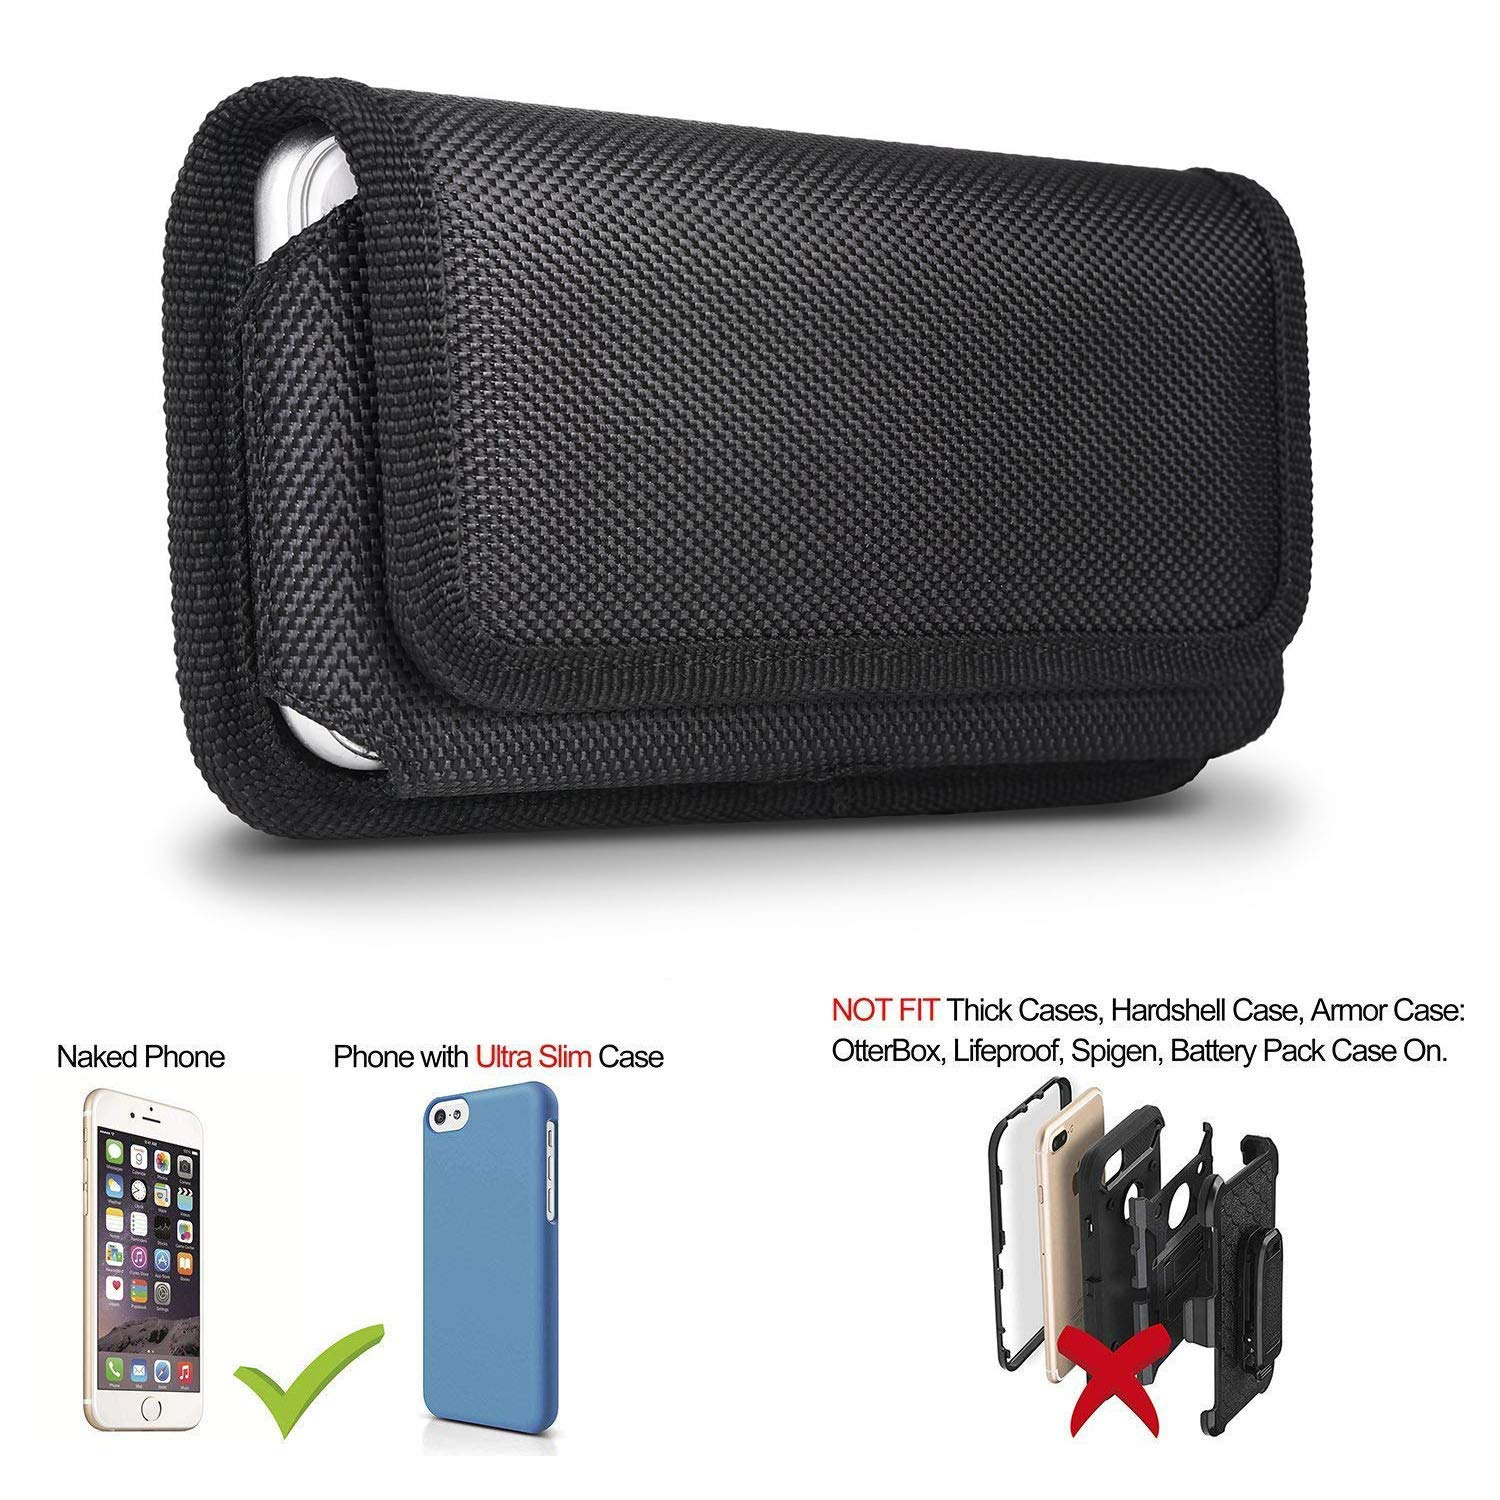 pretty nice 1252d 31bb4 2 Pack Belt Pouch Case for iPhone 8 Plus 7 Plus 6S Plus 6 Plus, miadore  Rugged Nylon Horizontal Phone Holster and Vertical Phone Holder with Belt  Clip ...